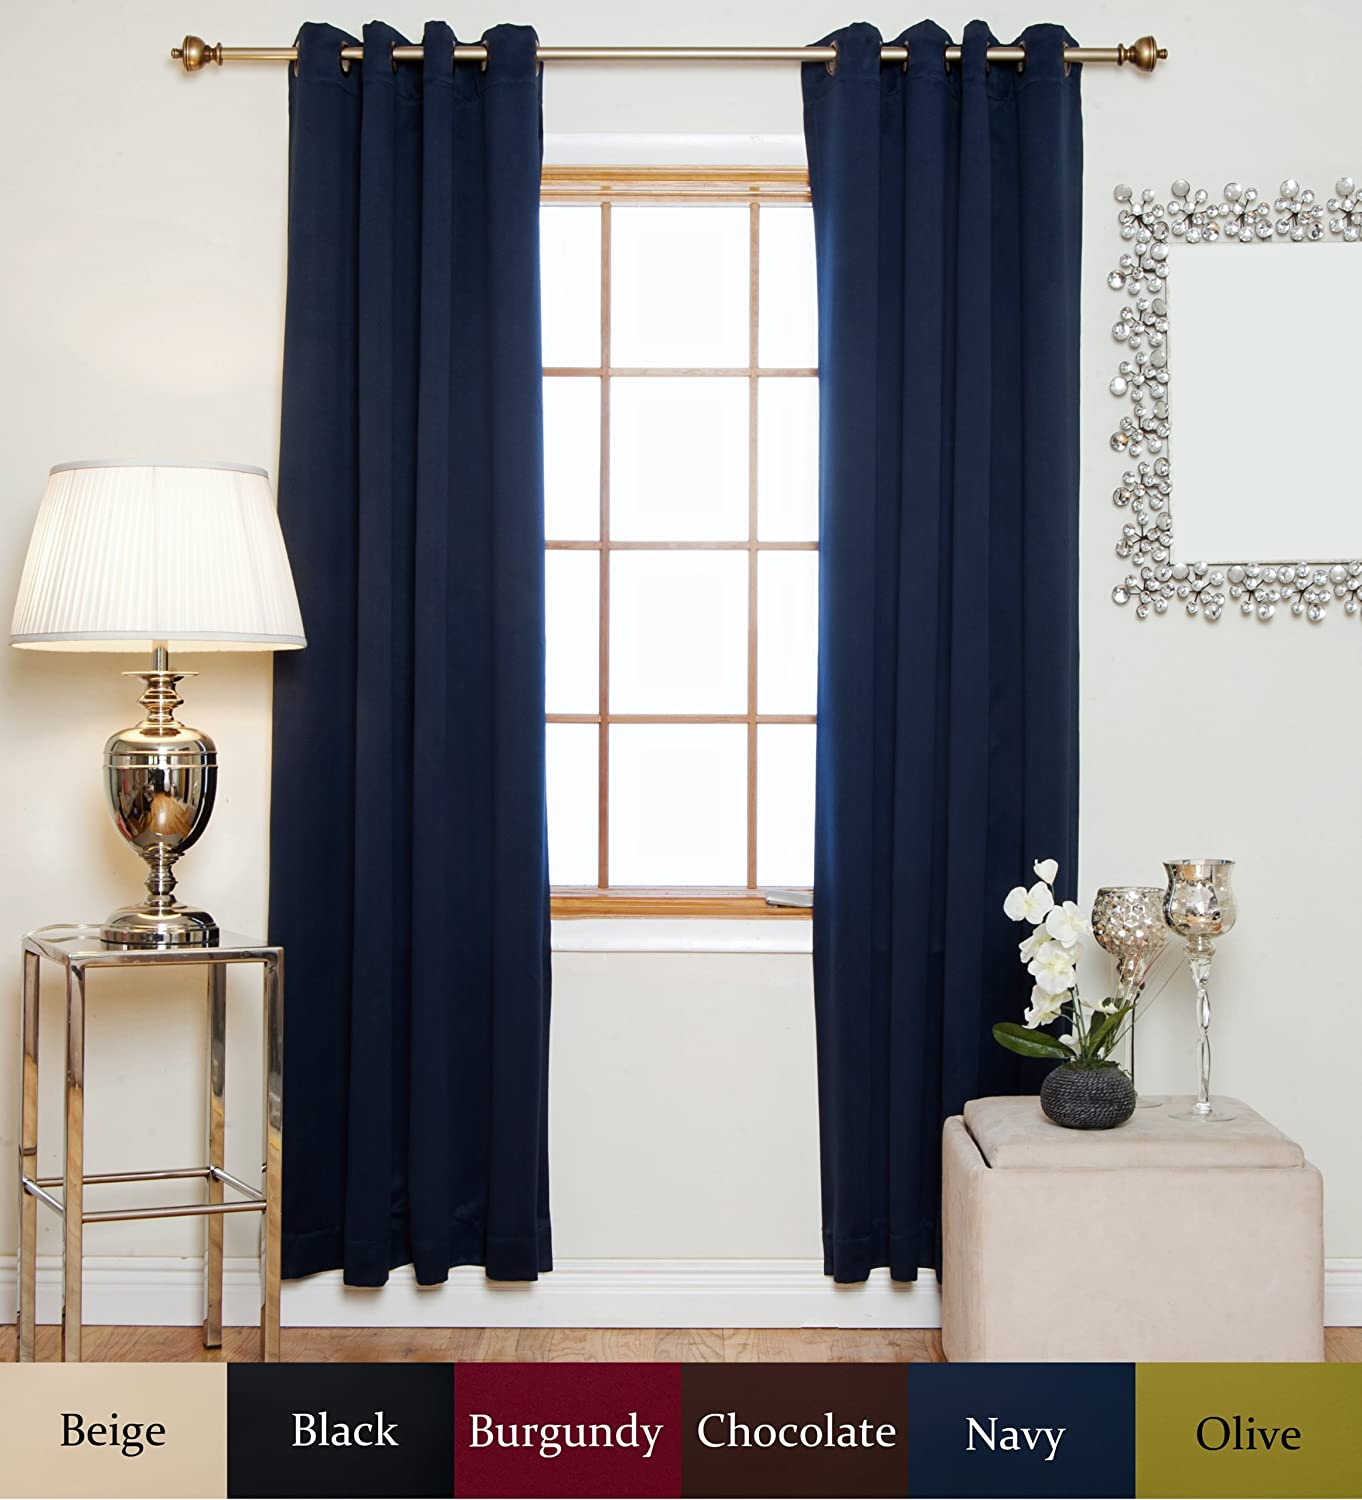 150 Inch Curtain Rod And 63 Inch Curtains With Gorgeous Colors And Unique Curtain Rods For 120